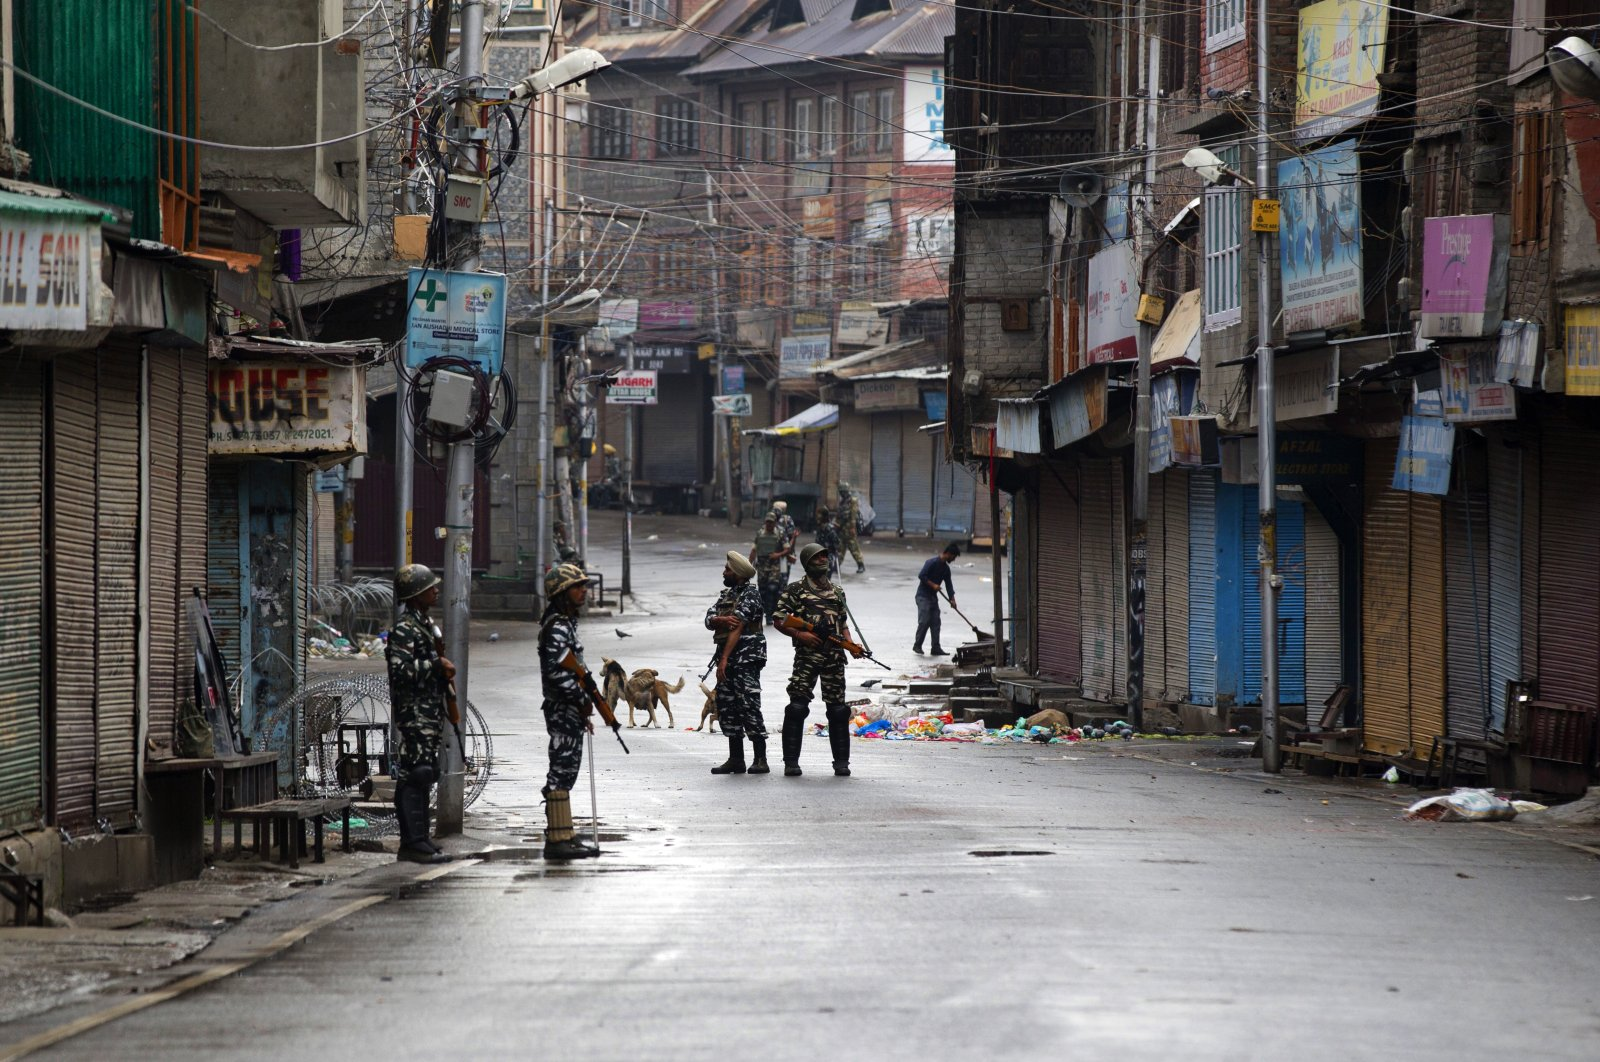 Indian paramilitary soldiers stand guard on a deserted street during curfew, Srinagar, Jammu and Kashmir, Aug. 8, 2019. (AP Photo)